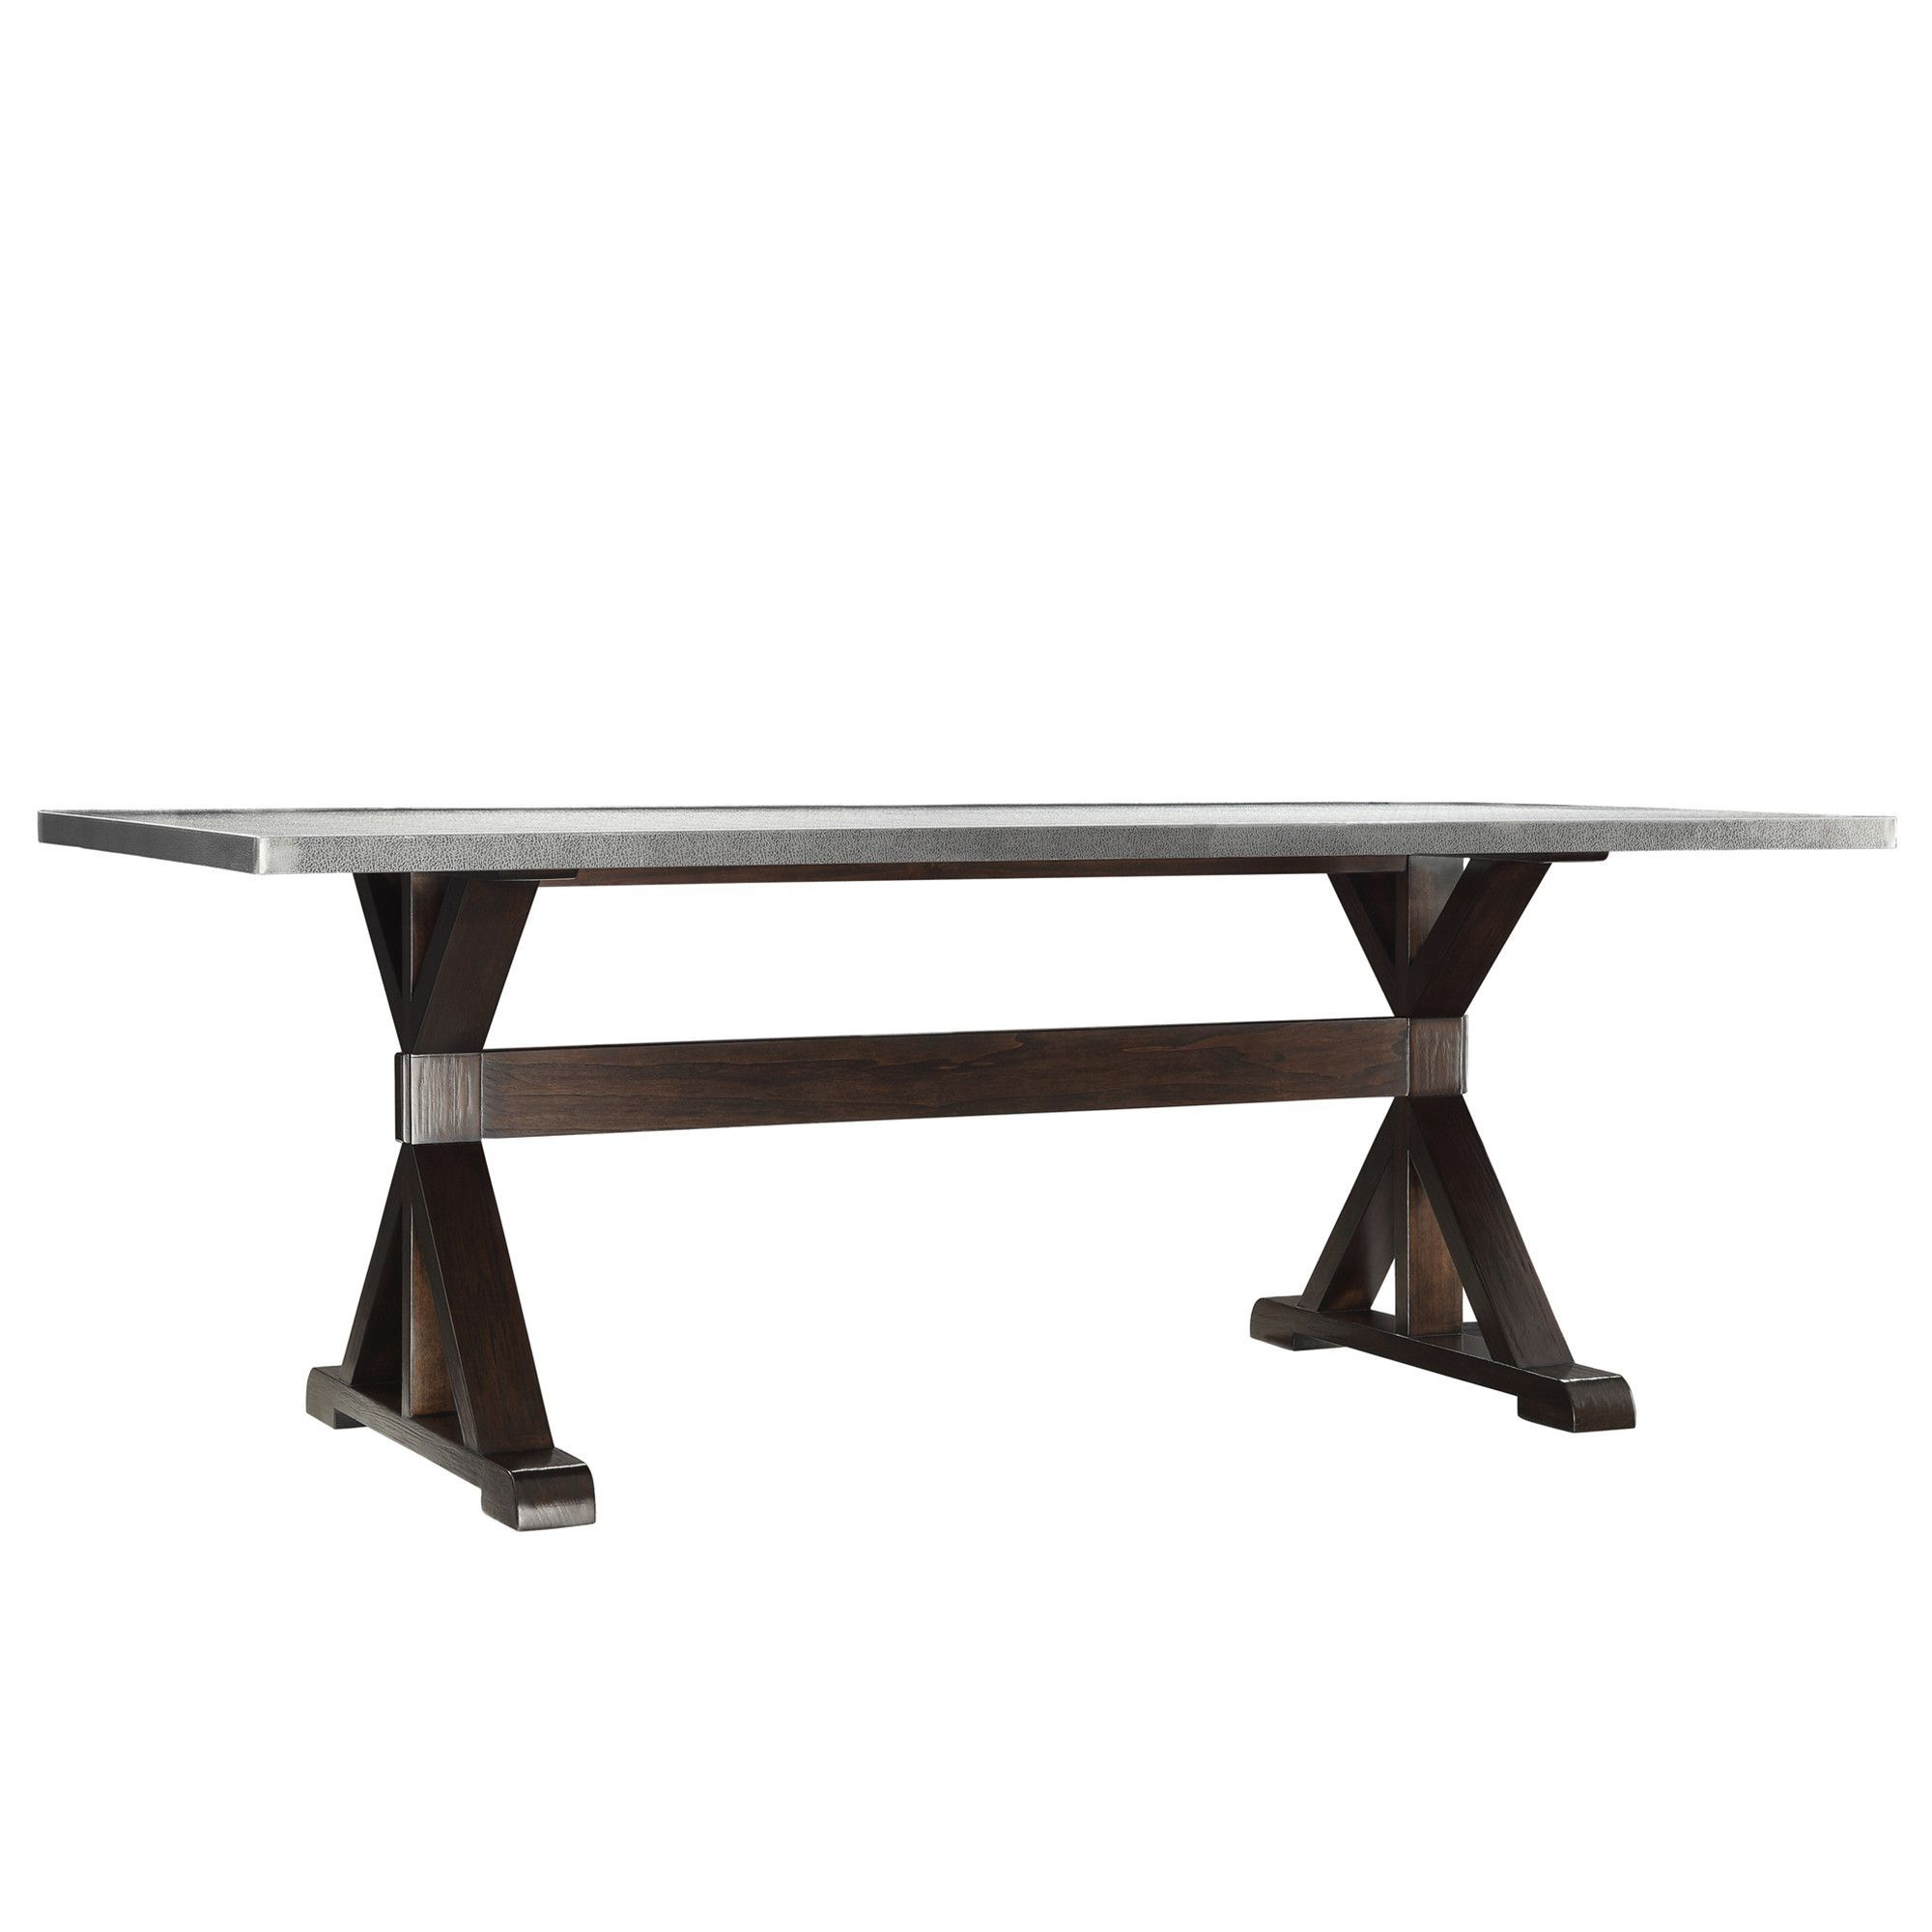 Purgatoire Valley Dining Table Trestle Dining Tables Stainless